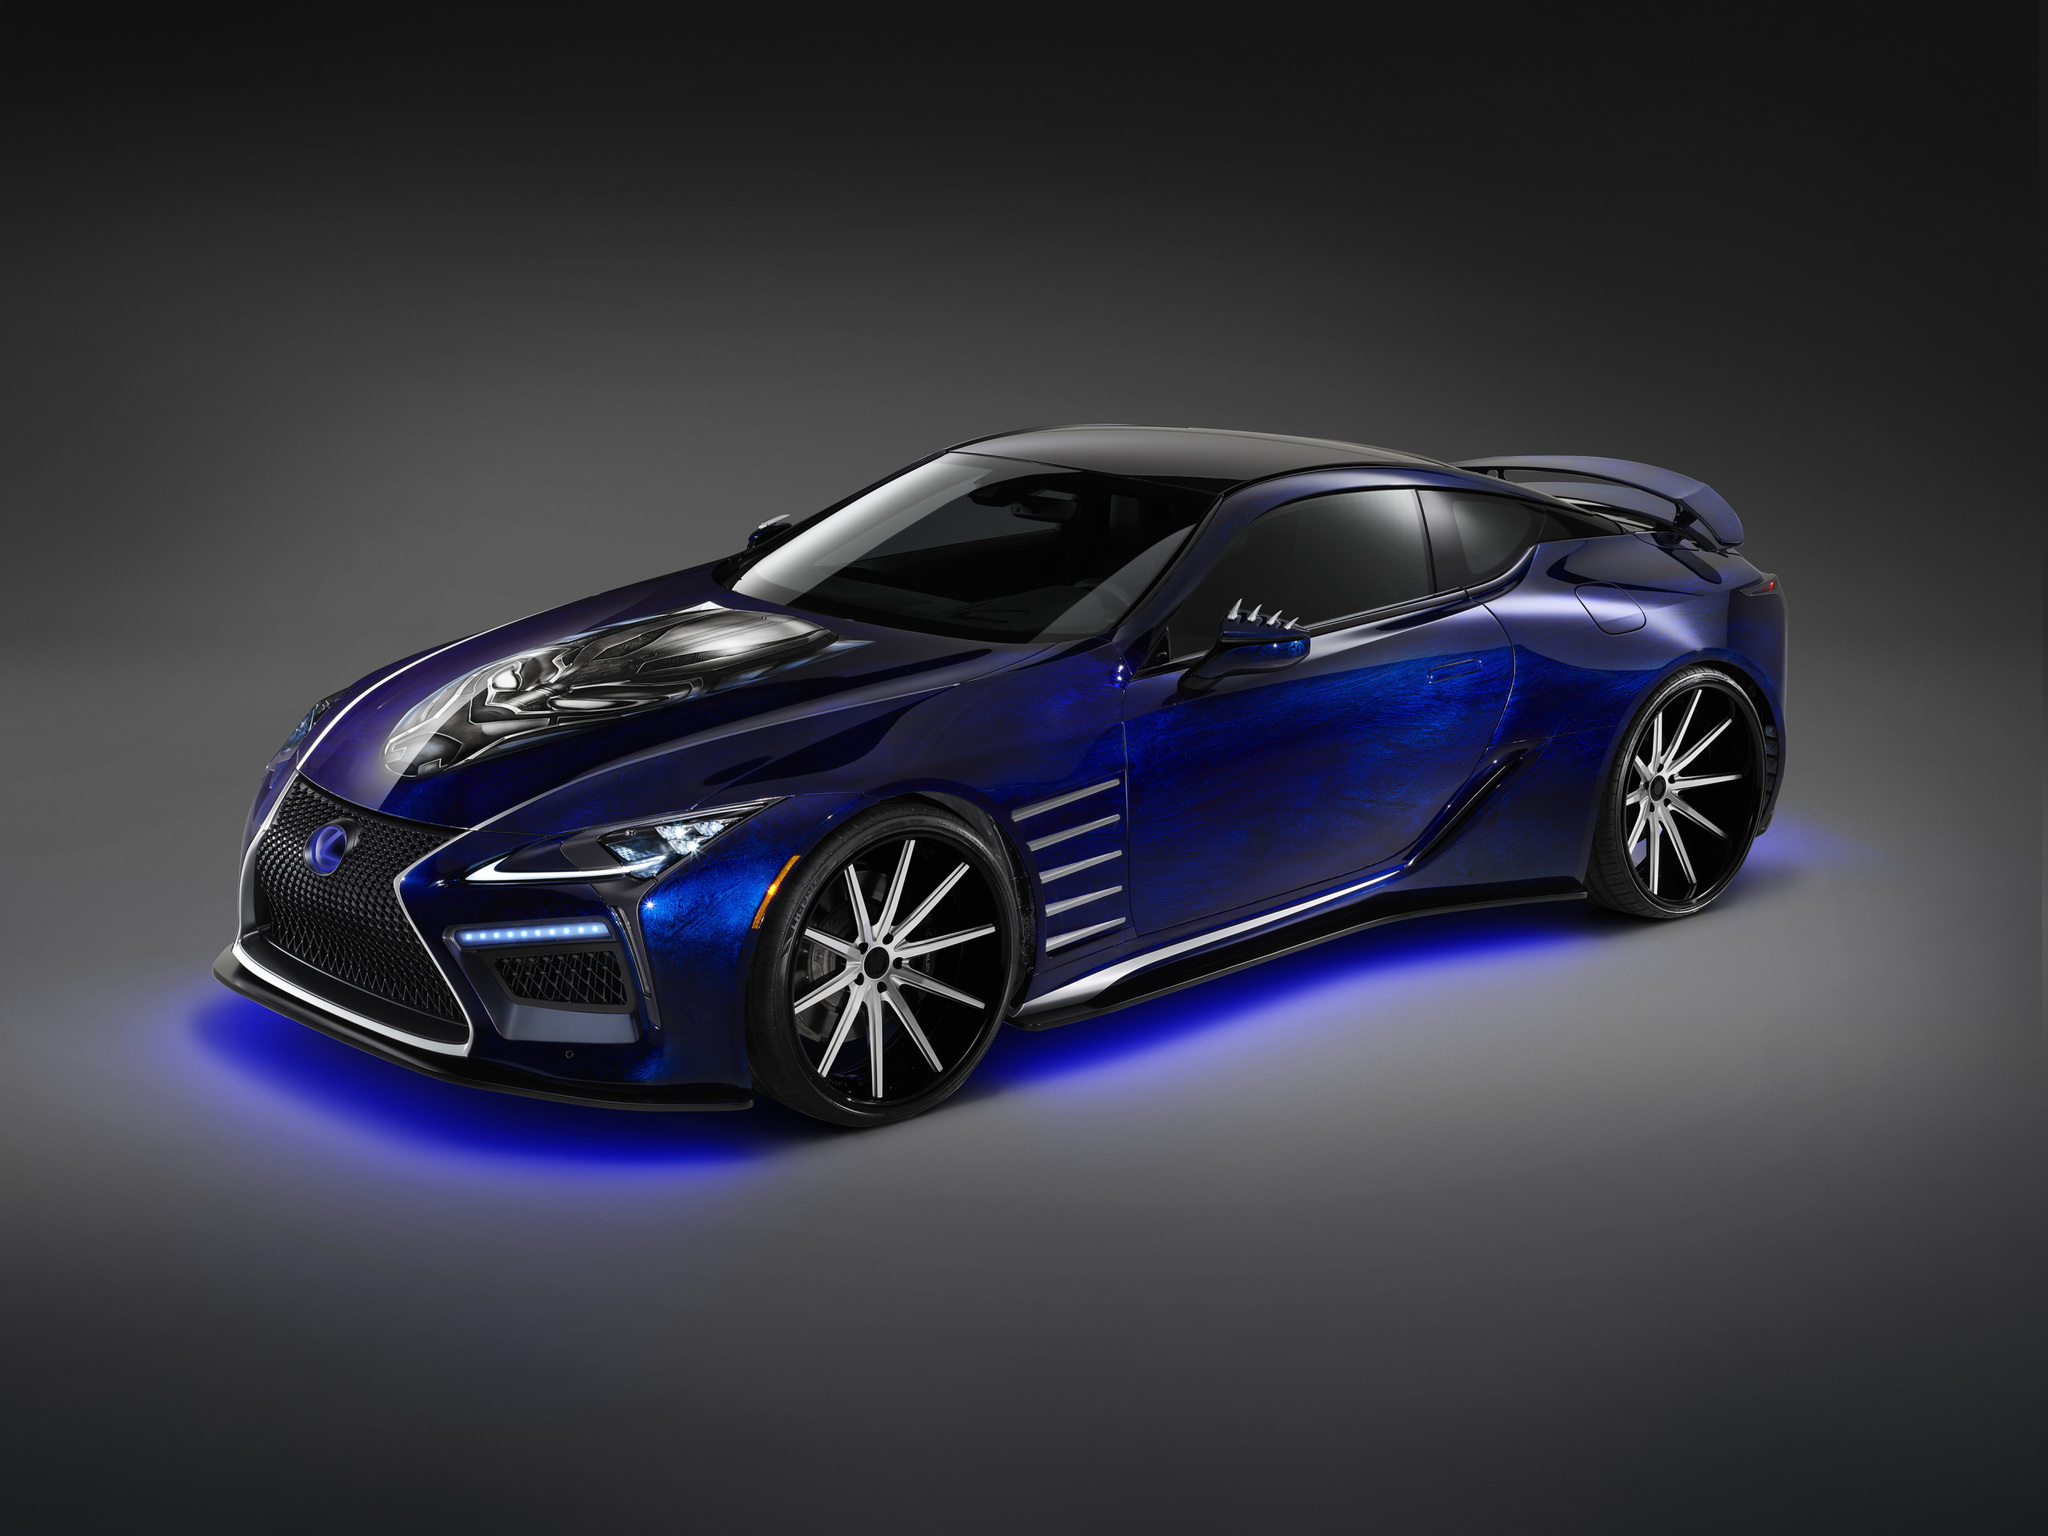 2017 Lexus Lc 500 Inspired By Black Panther Top Speed